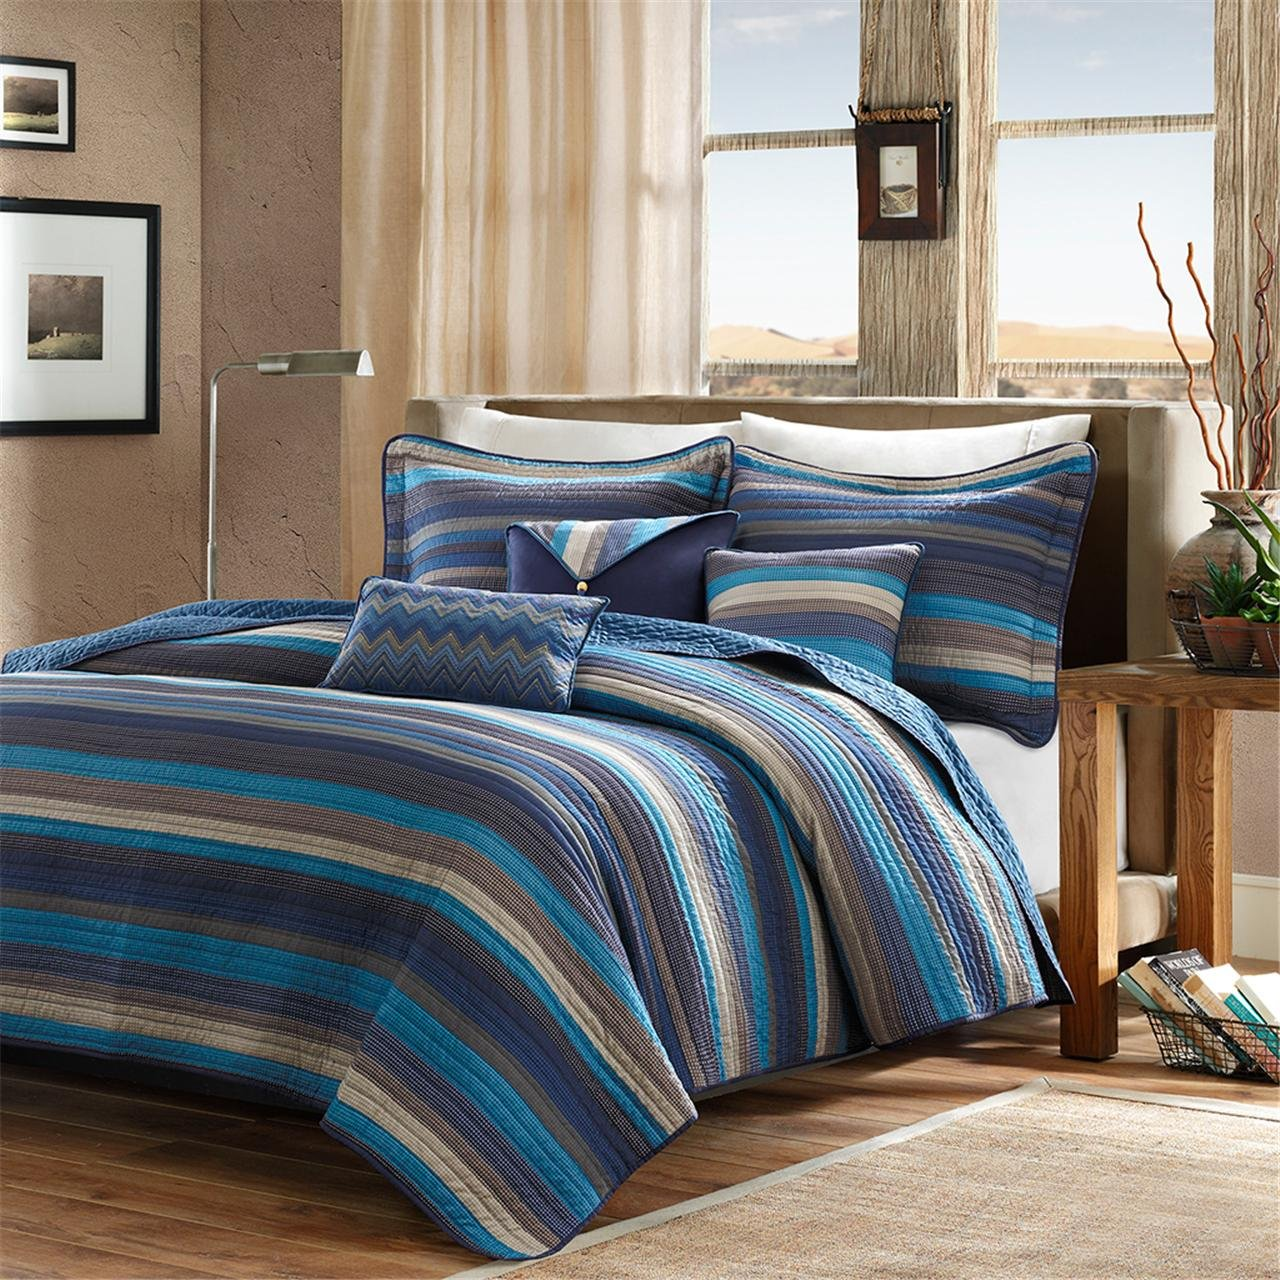 Madison Park Yosemite King/Cal King Size Quilt Bedding Set - Blue, Striped – 6 Piece Bedding Quilt Coverlets – Cotton Bed Quilts Quilted Coverlet